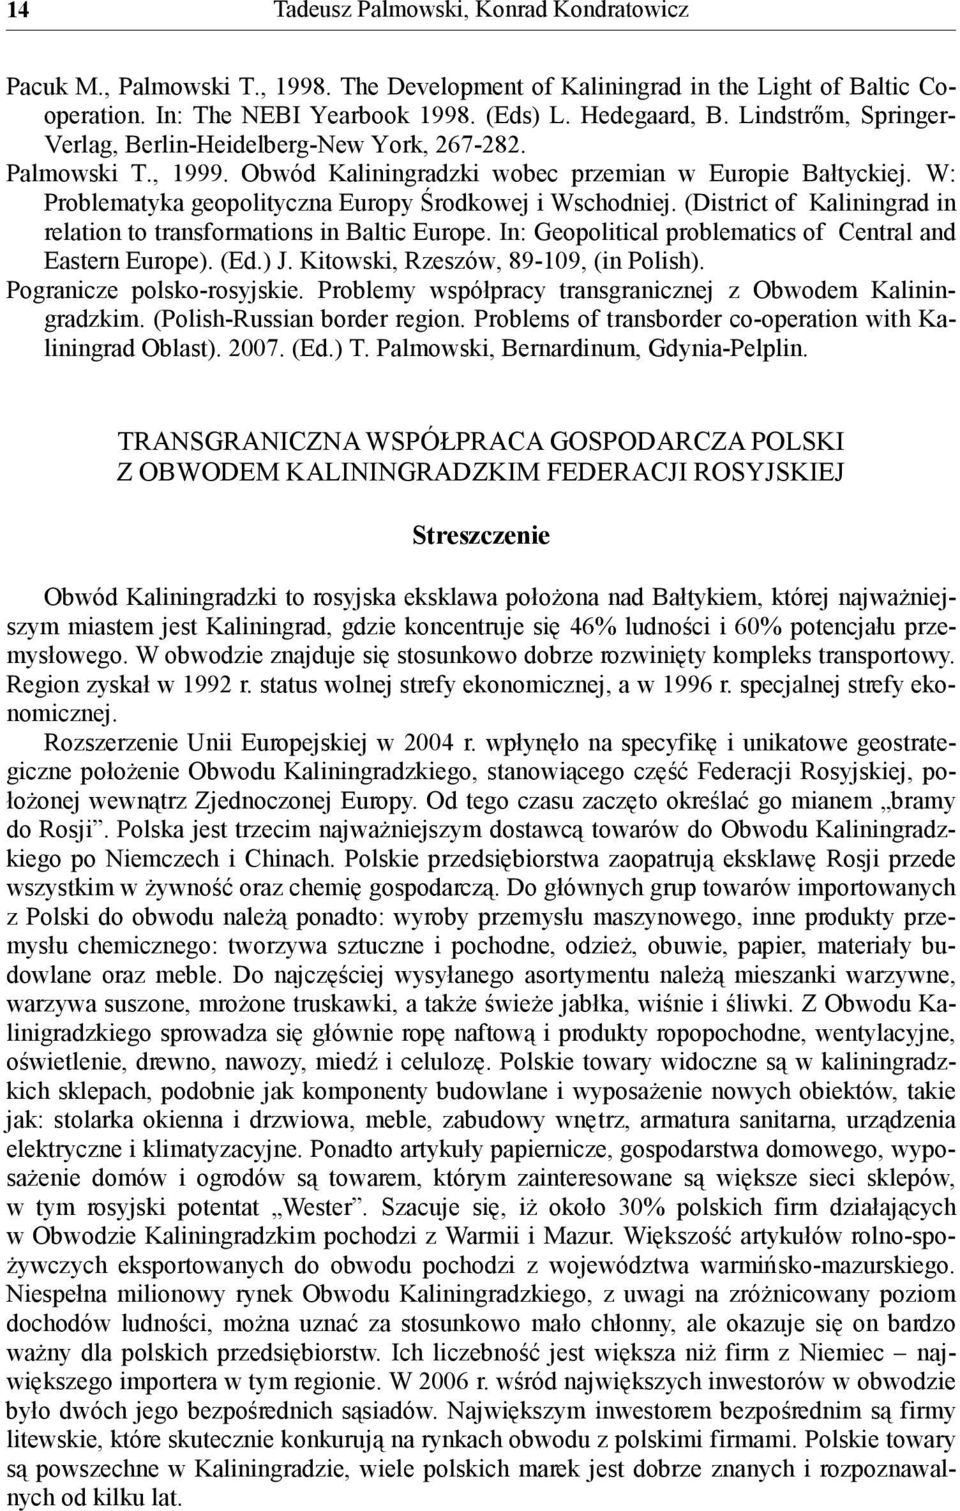 W: Problematyka geopolityczna Europy Środkowej i Wschodniej. (District of Kaliningrad in relation to transformations in Baltic Europe. In: Geopolitical problematics of Central and Eastern Europe).